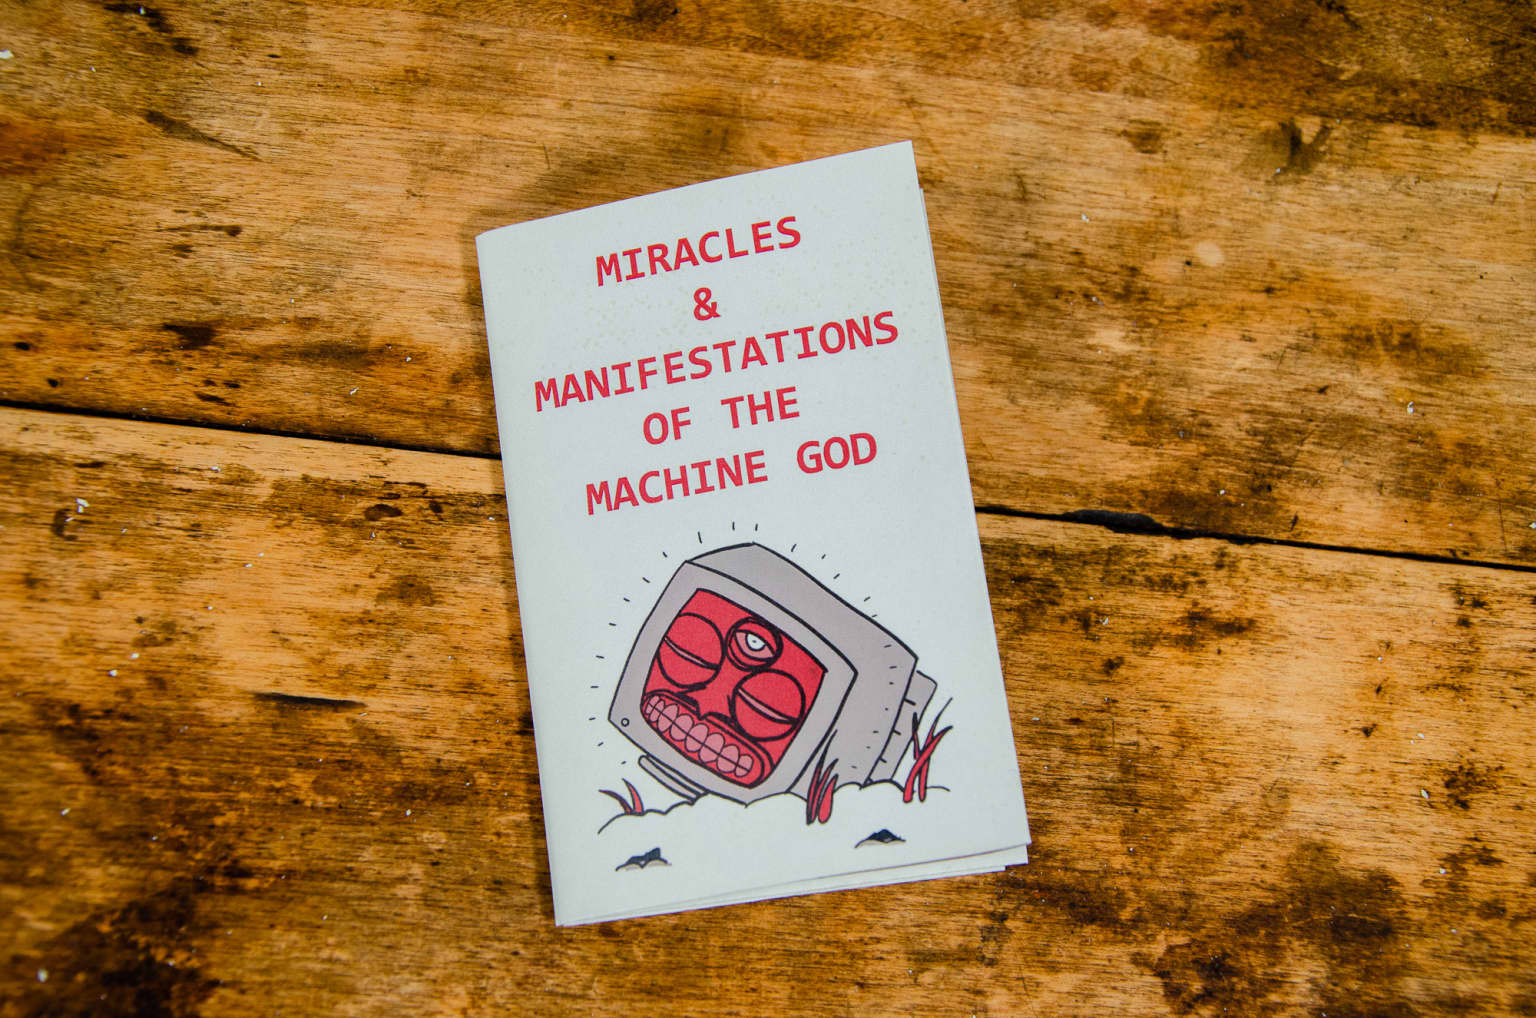 Miracles & Manifestations of the Machine God